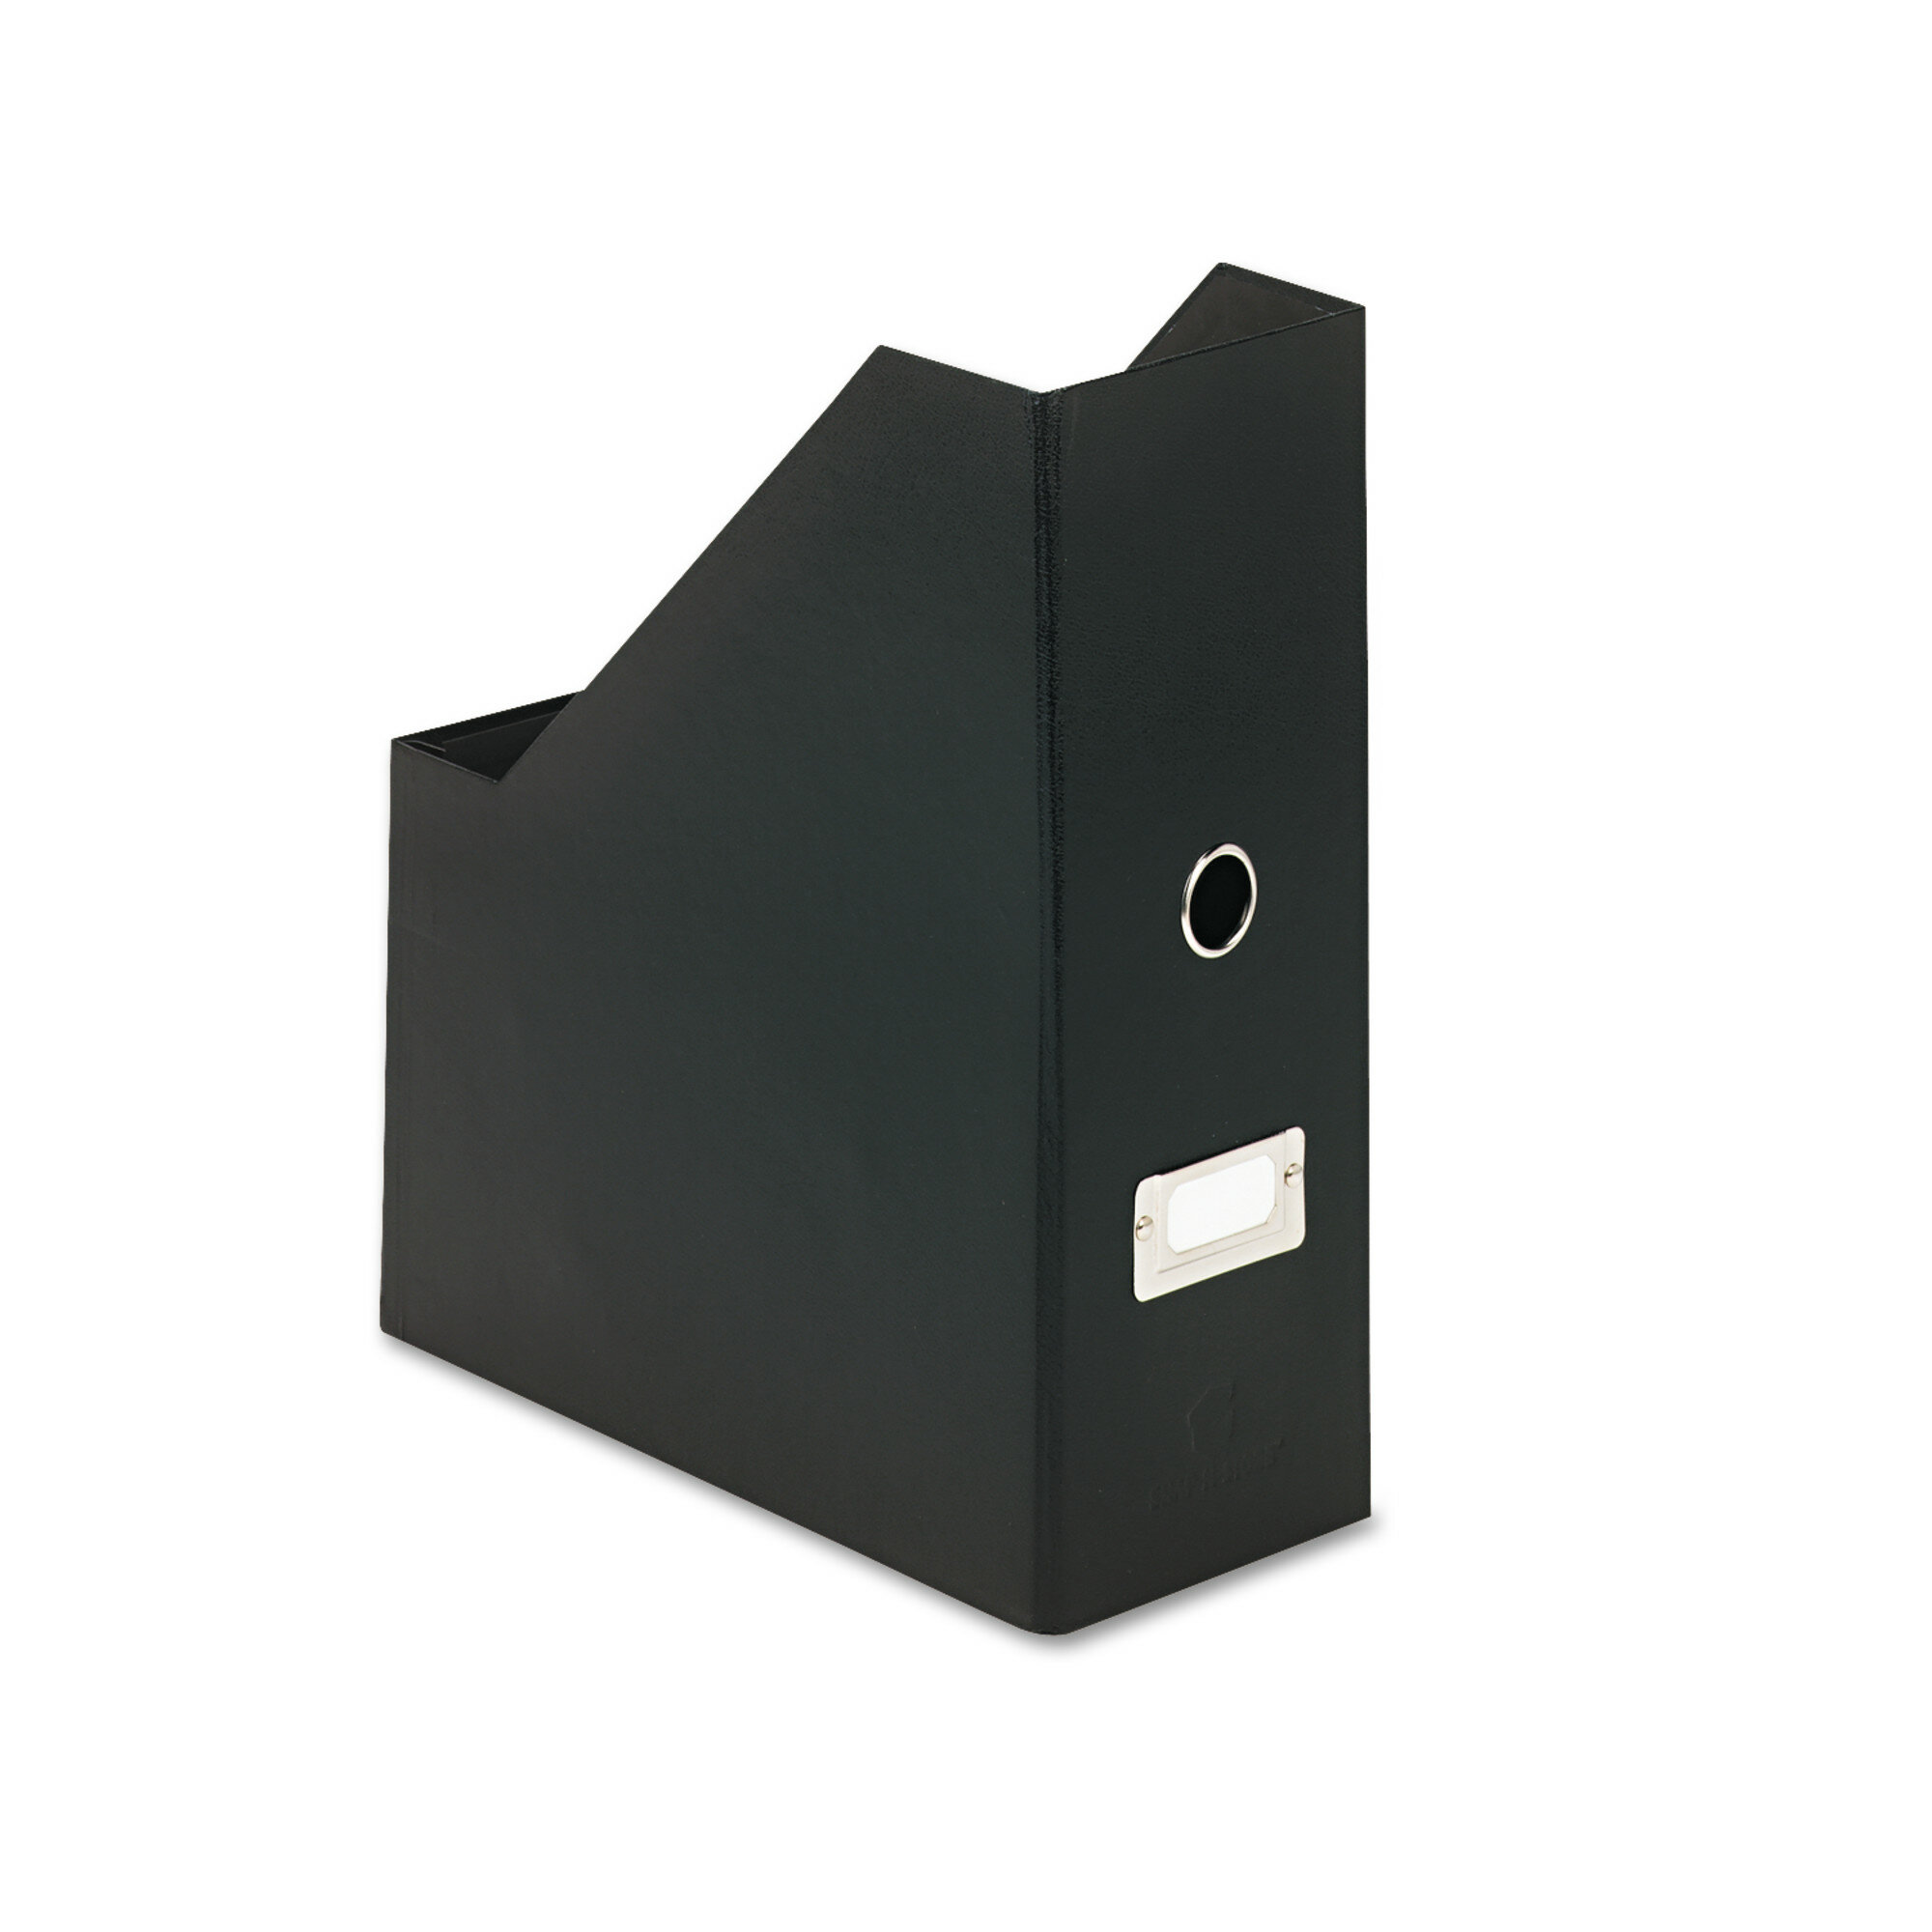 09d365d159b IDEASTREAM CONSUMER PRODUCTS Snap-N-Store Heavy-Duty Fiberboard Magazine  File with PVC Laminate   Reviews